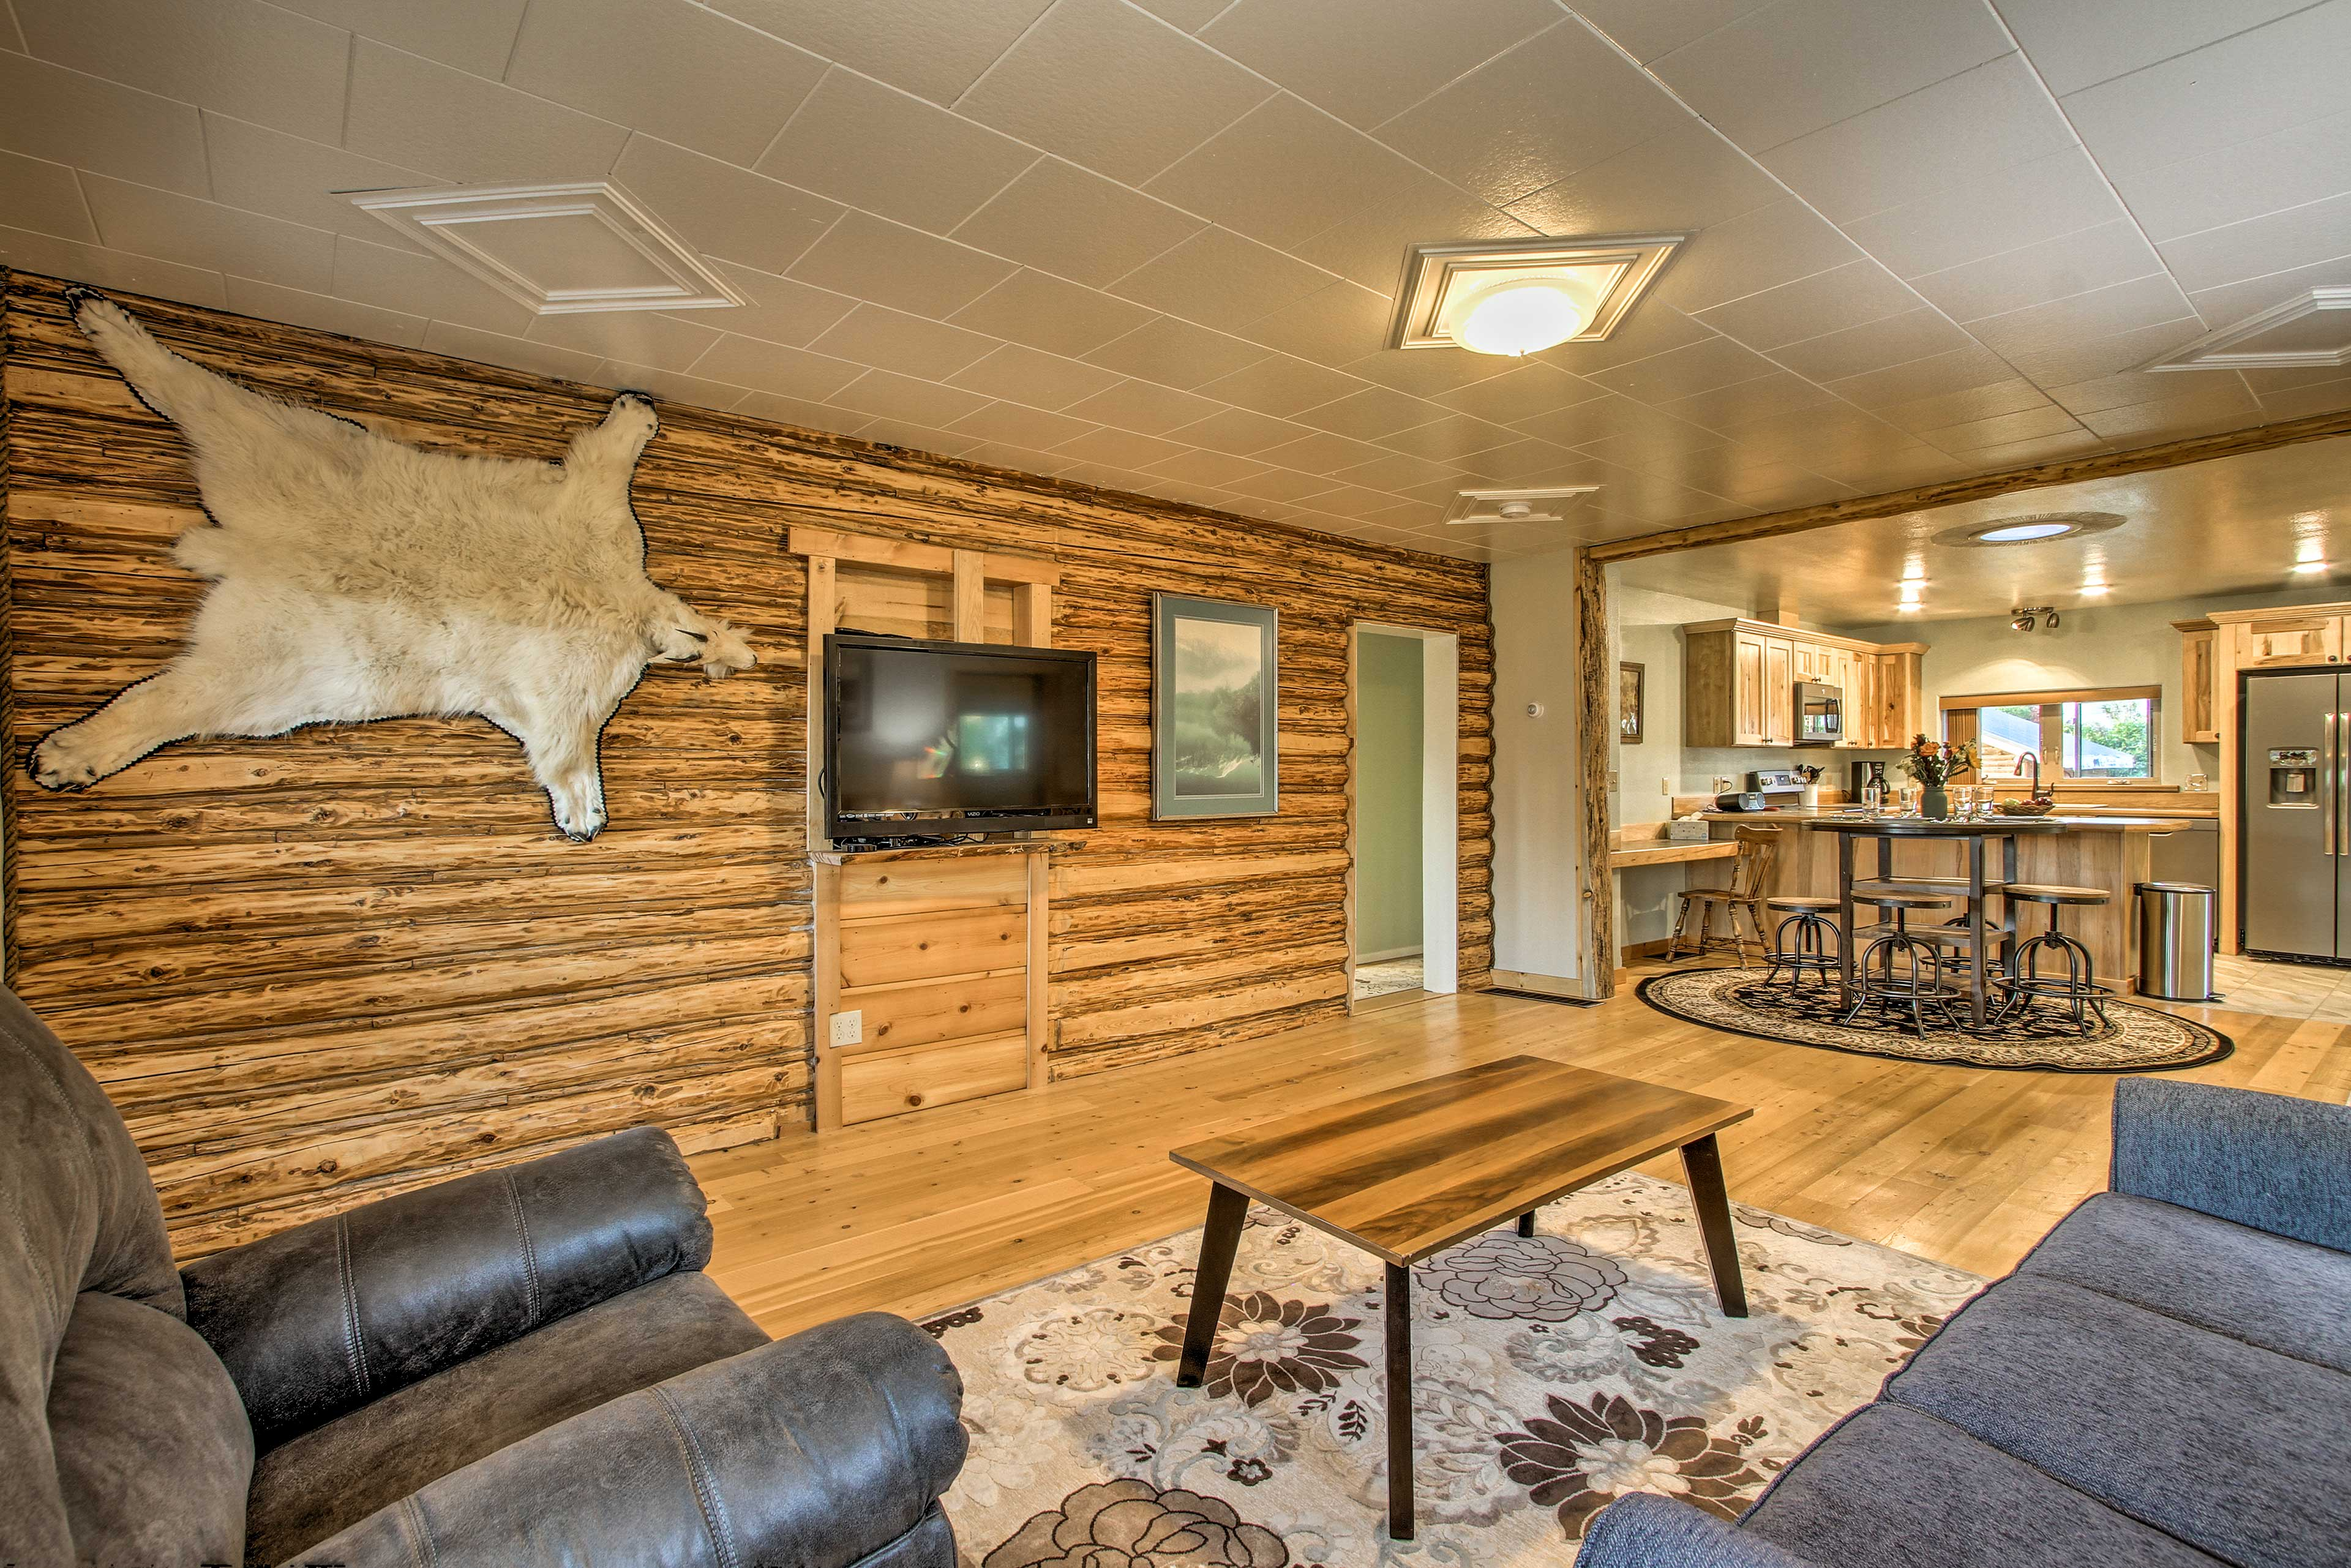 Relax with your crew of 6 and enjoy the rustic interior.